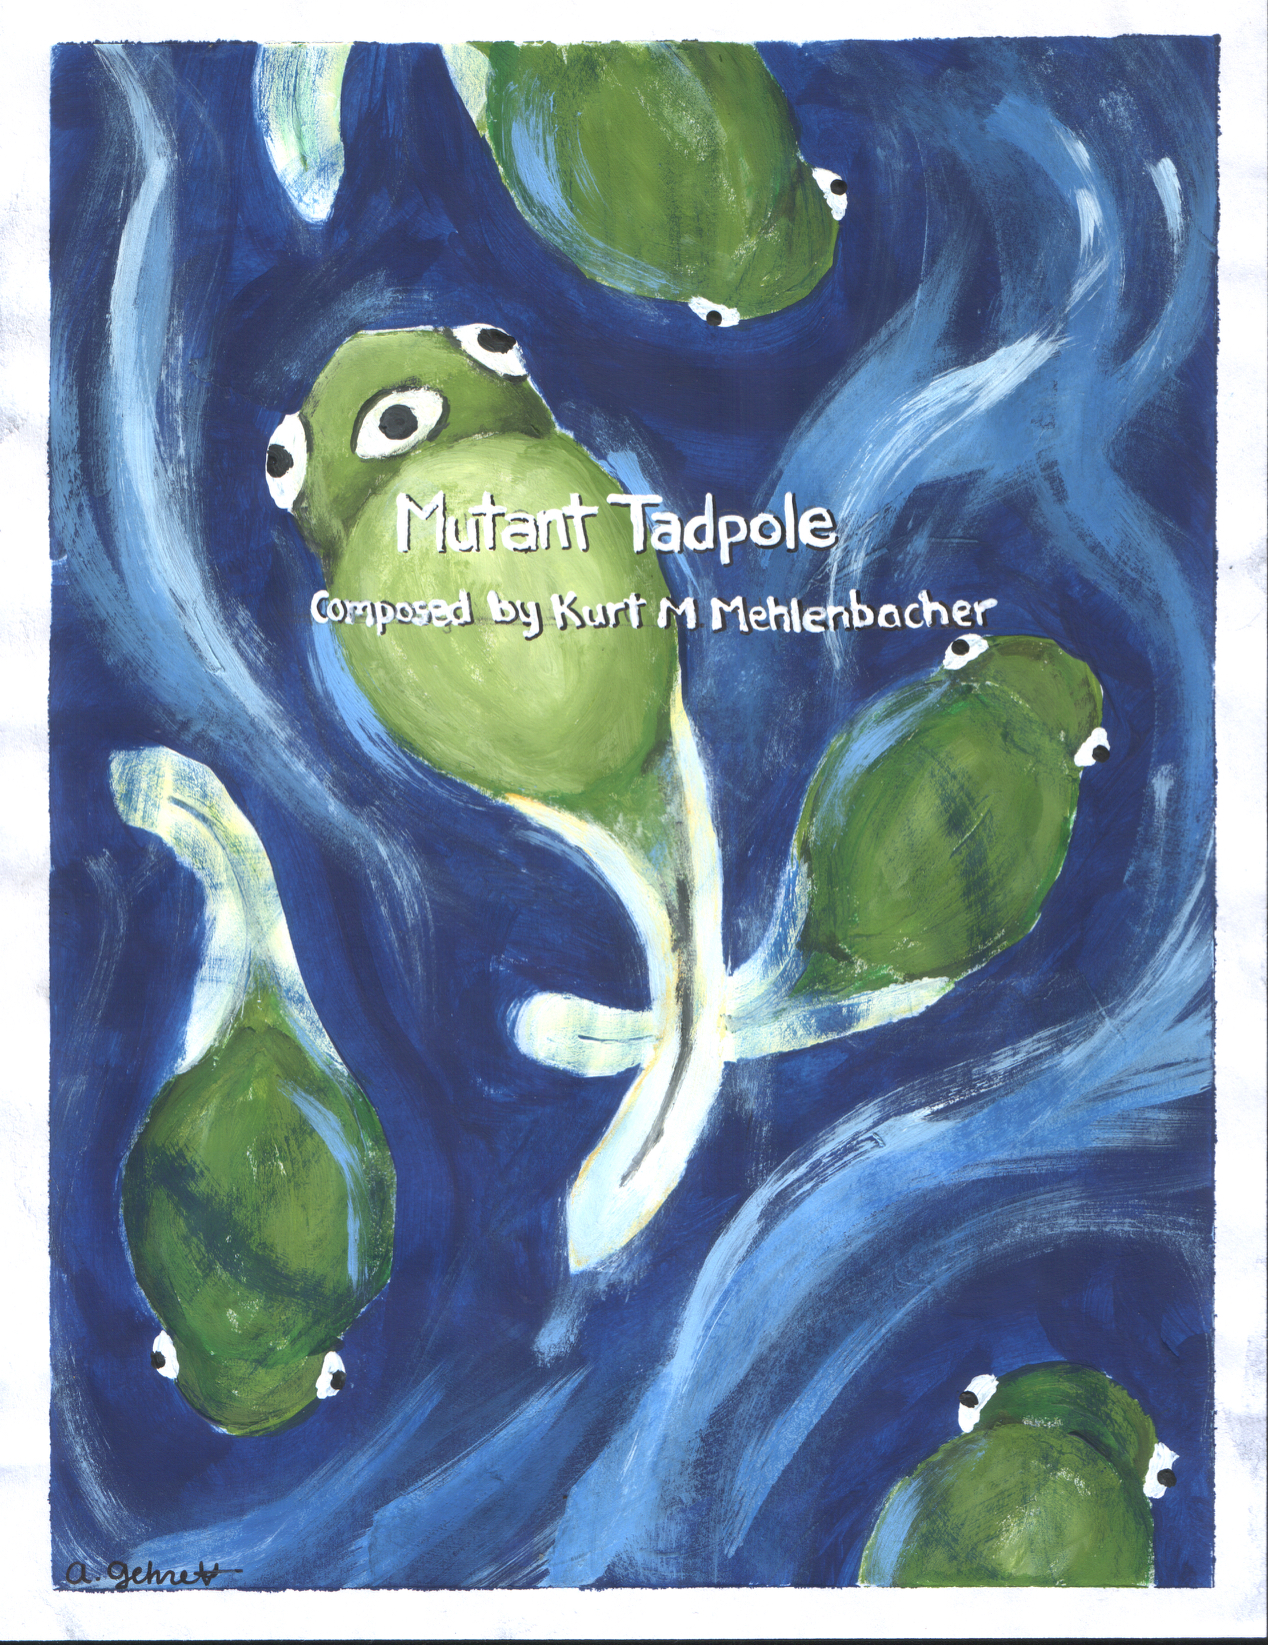 Mutant Tadpole    for woodwind sextet (flute, oboe, Bb clarinet, F horn, bassoon, and contrabassoon)